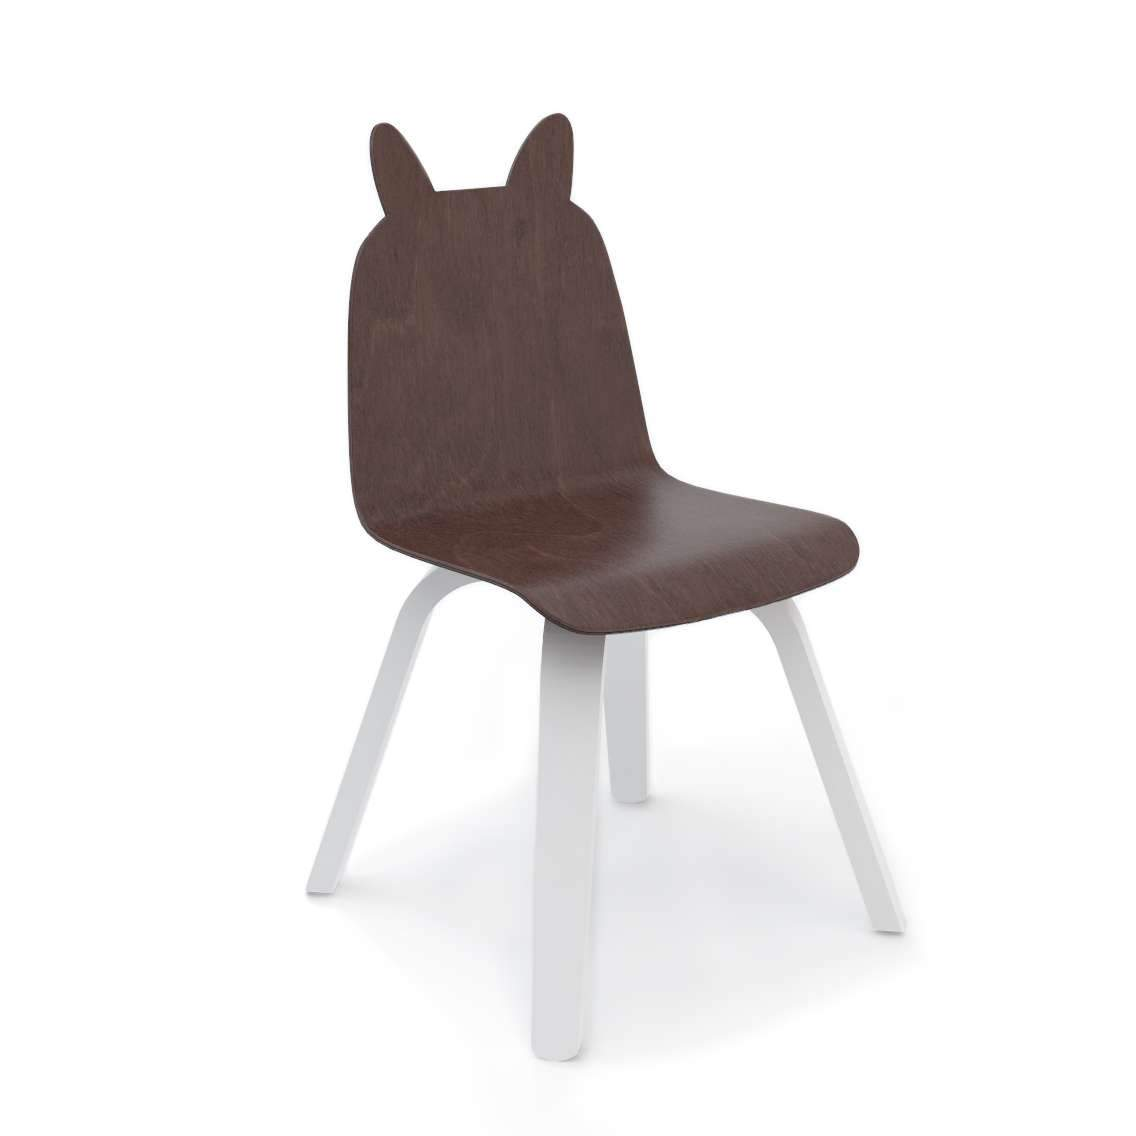 Oeuf Rabbit Chairs (Set of 2) - huggle